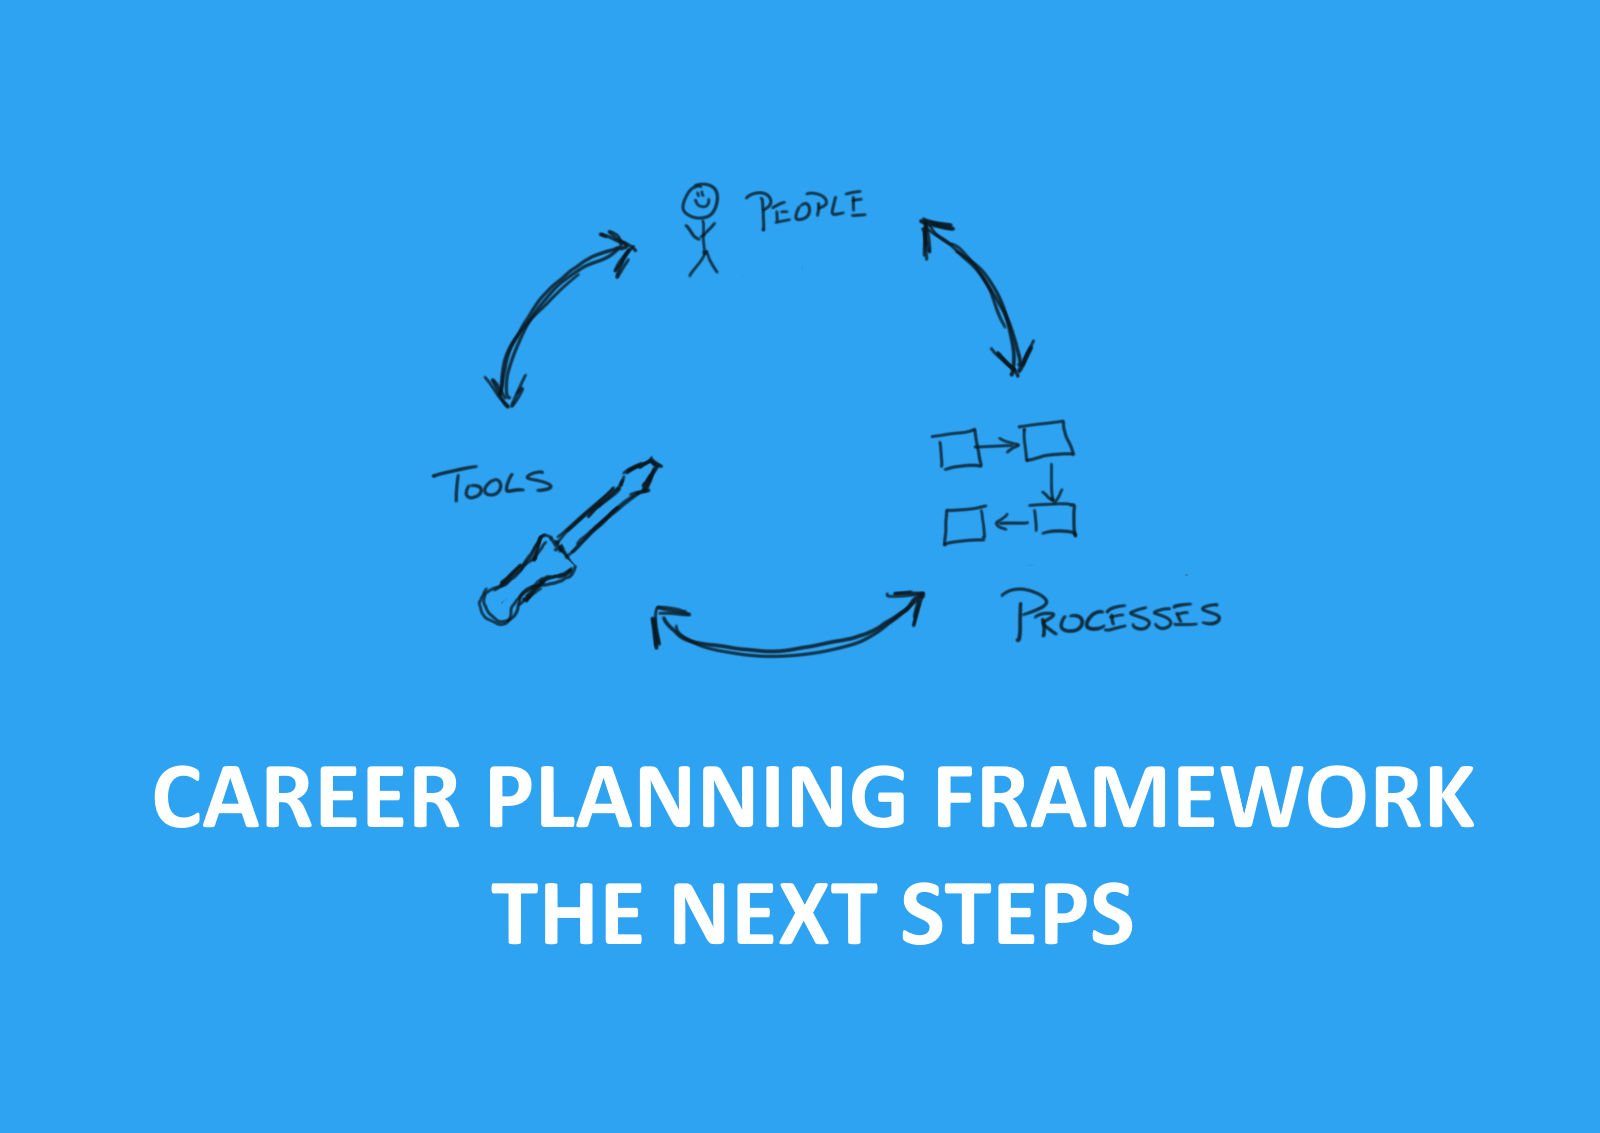 Career Planning Framework - Next Steps